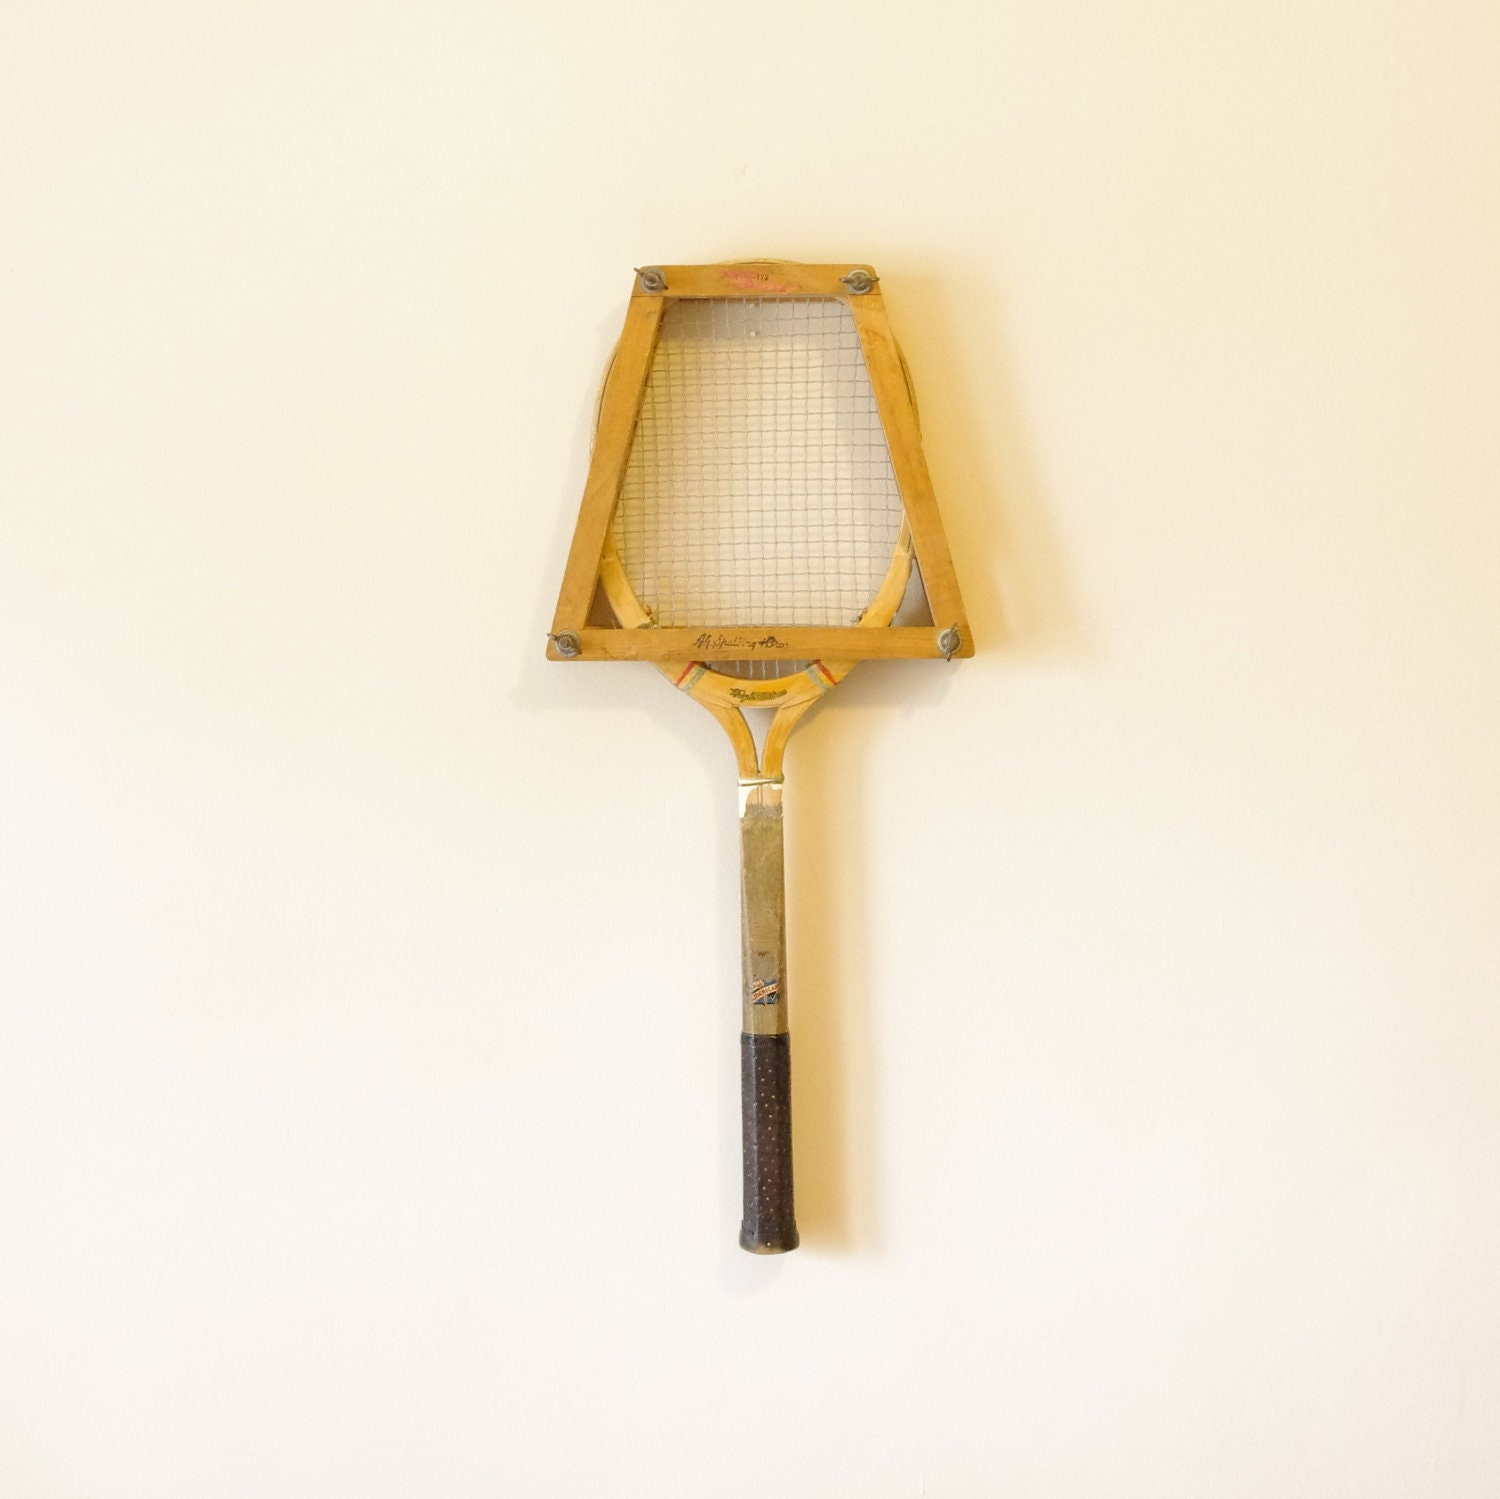 Vintage Wooden Tennis Racket and Wooden Bracket Holder - Olympics - Sports - 1960's - ThisCharmingManCave